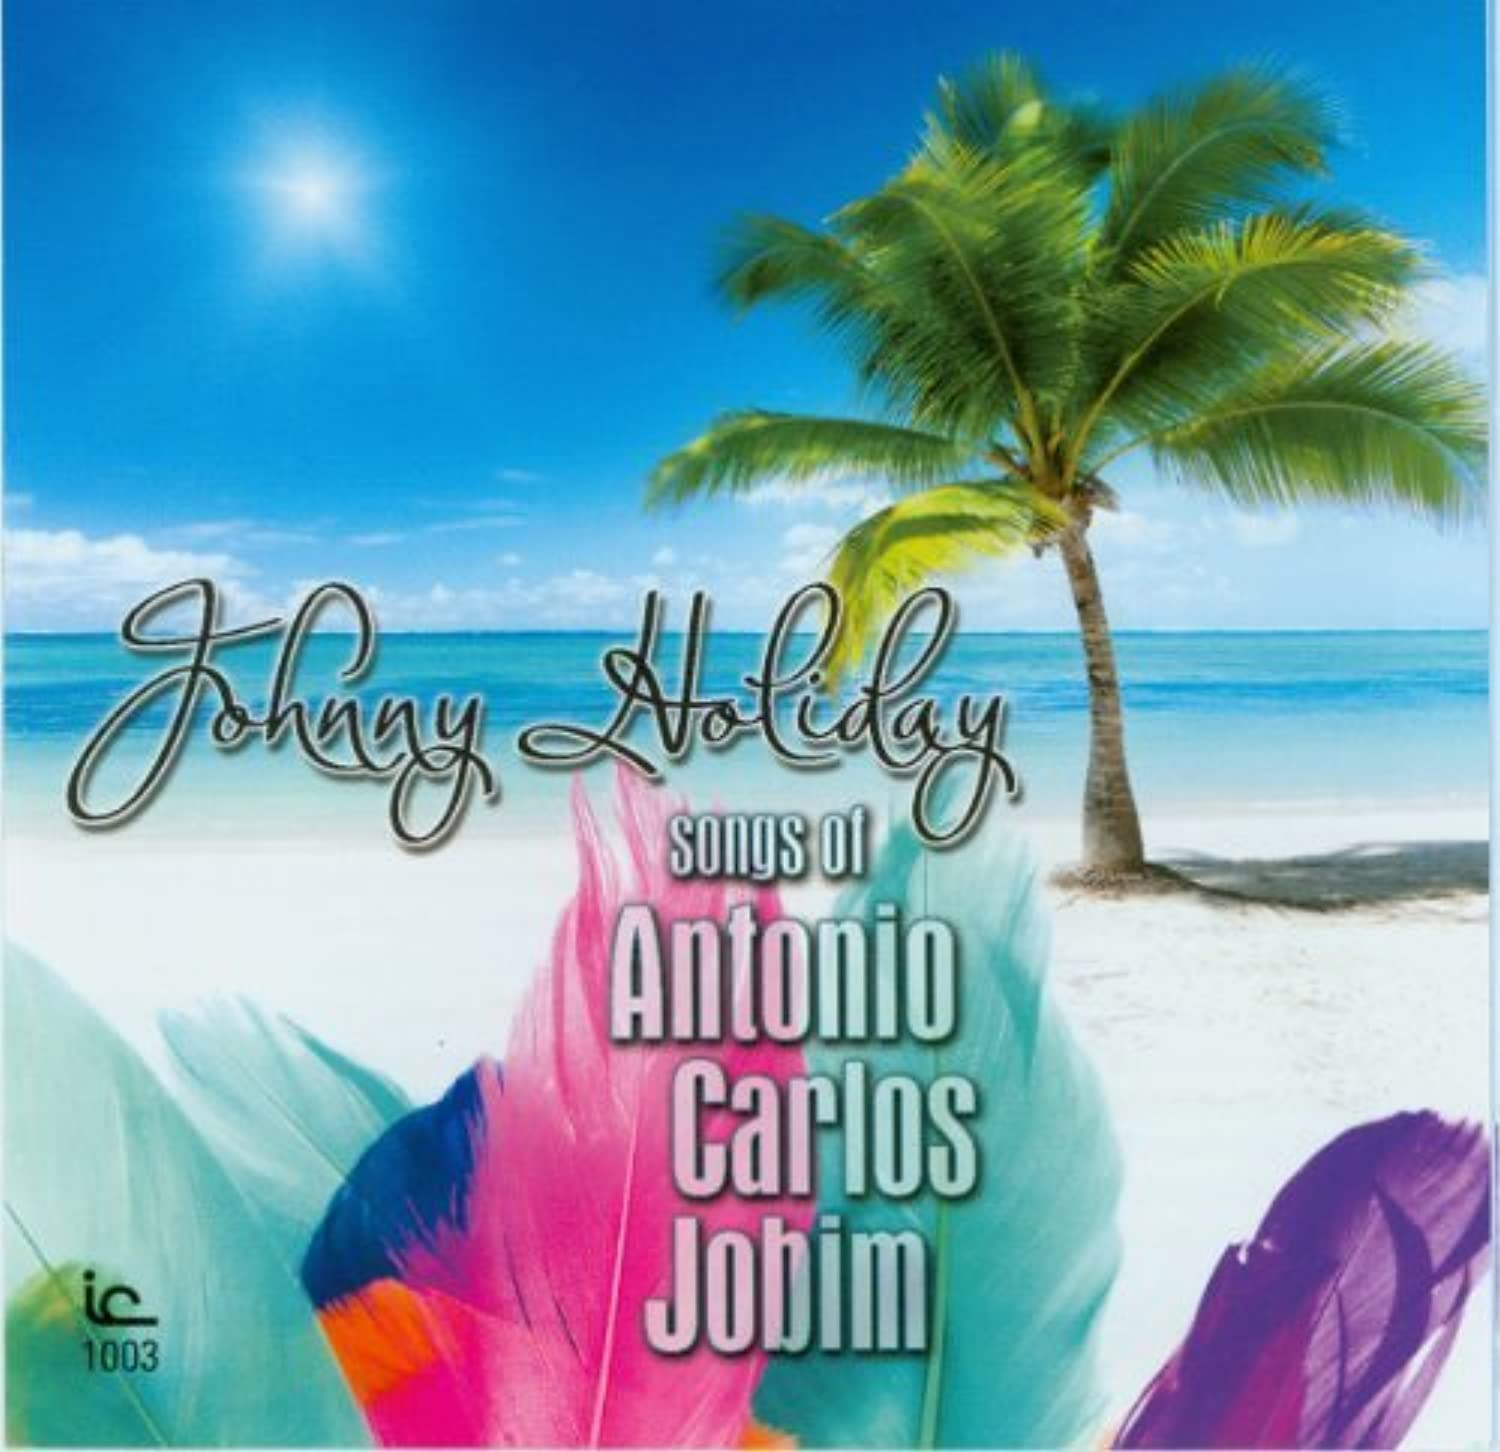 Johnny Holiday: Songs of Antonio Carlos Jobim by Johnny Holiday (2011-04-19) oovlgo9926191